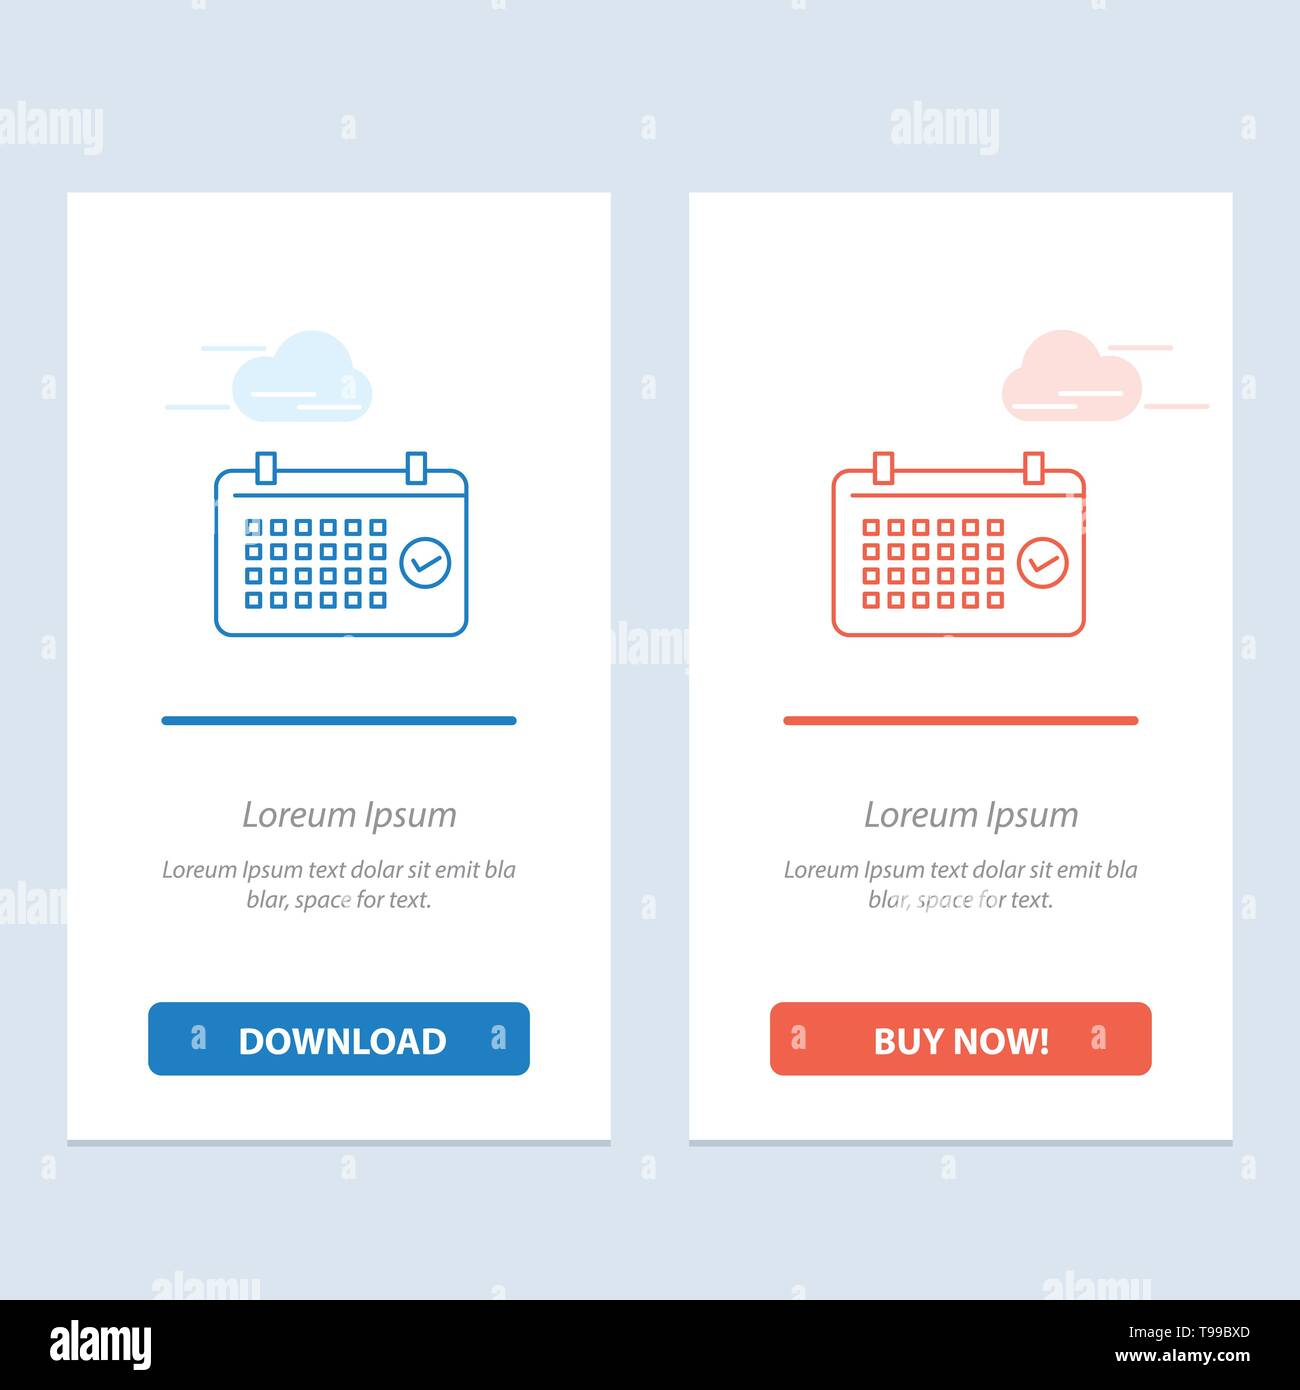 Calendar, Date, Month, Year, Time Blue and Red Download and Buy Now